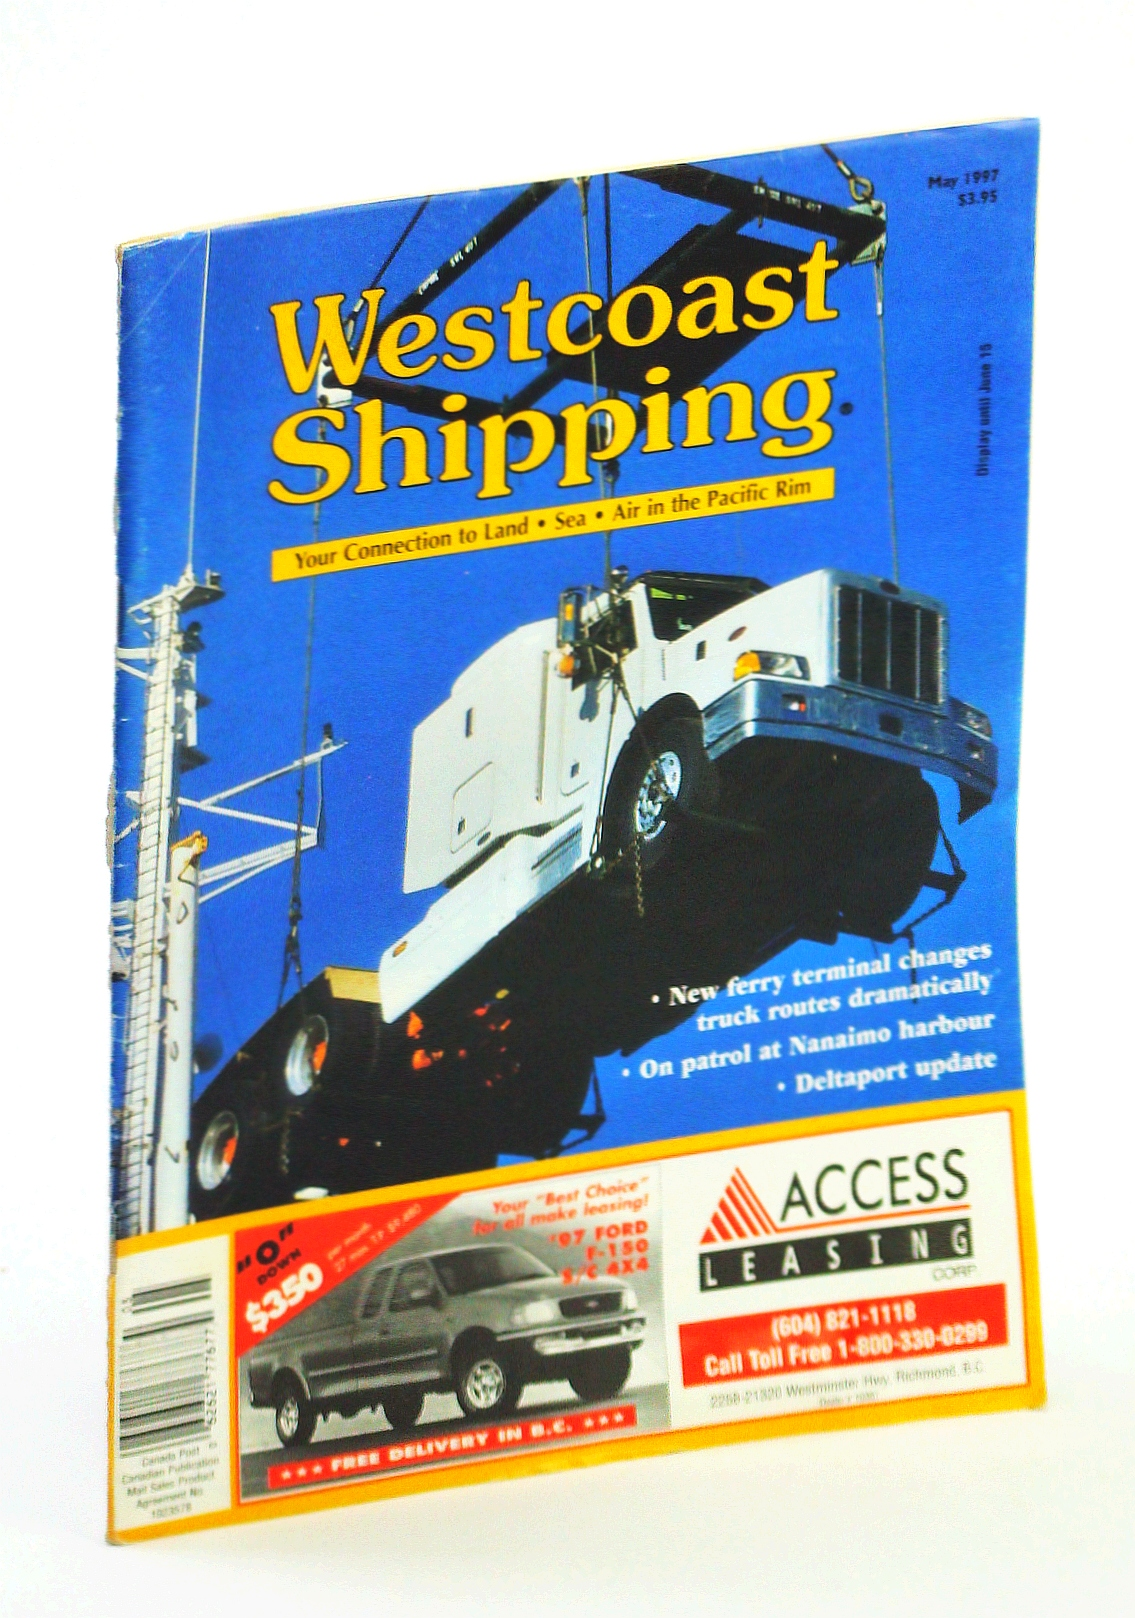 Image for Westcoast Shipping [Magazine] - Your Connection to Land, Sea, Air in the Pacific Rim, May 1997